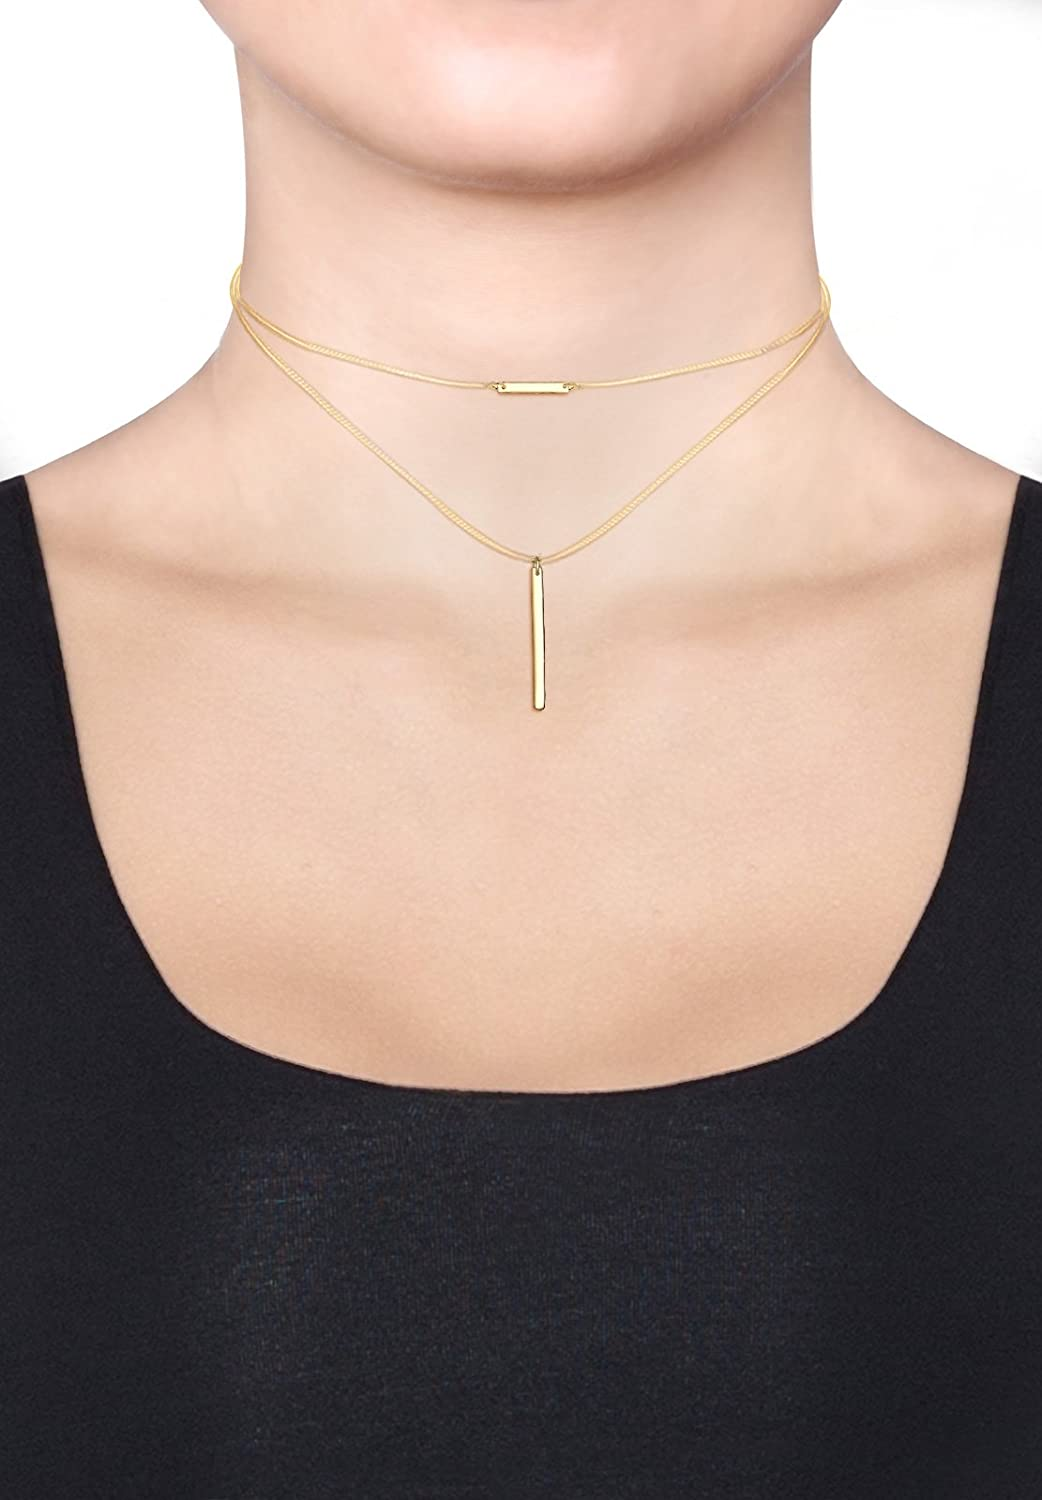 Elli Women Choker Geo Layer 925 Silver Gold Plated Necklace of Length 40cm 0103912317_40 D4ZwB